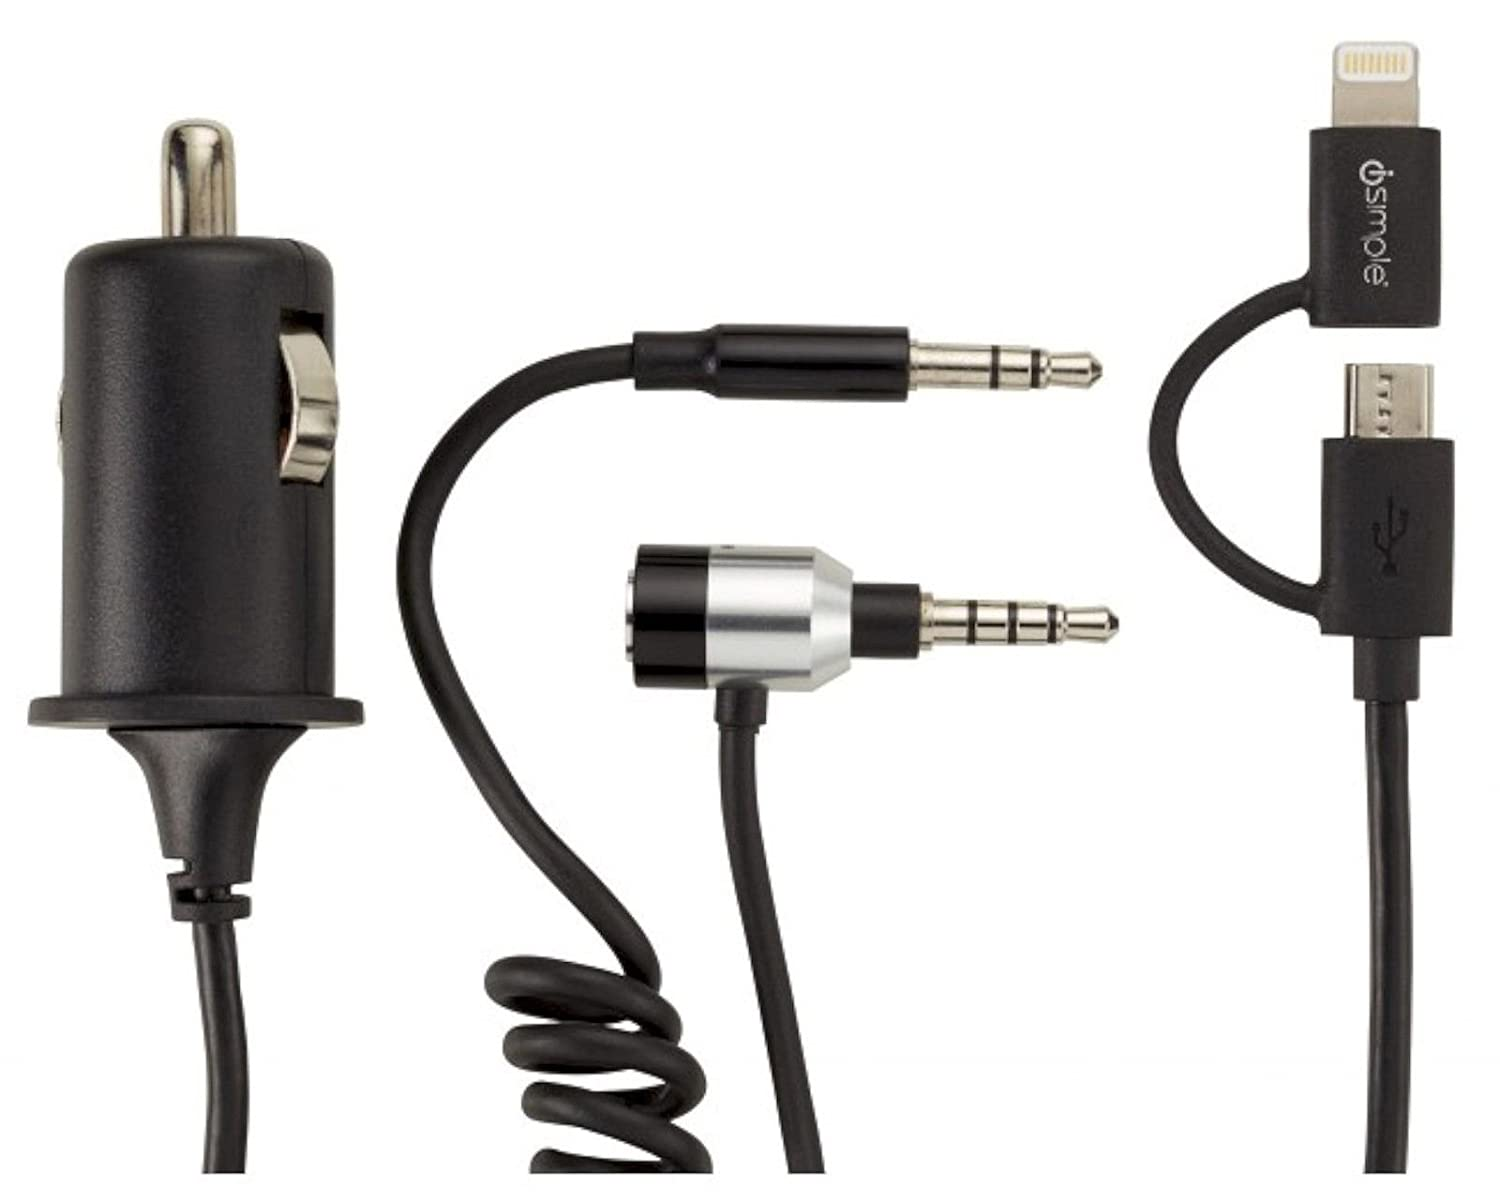 ISIMPLE calllinx All - in - One車充電ケーブルアダプタ3.5 MM Aux / Lightning / Micro USB – ismj3425 B0788TWF49